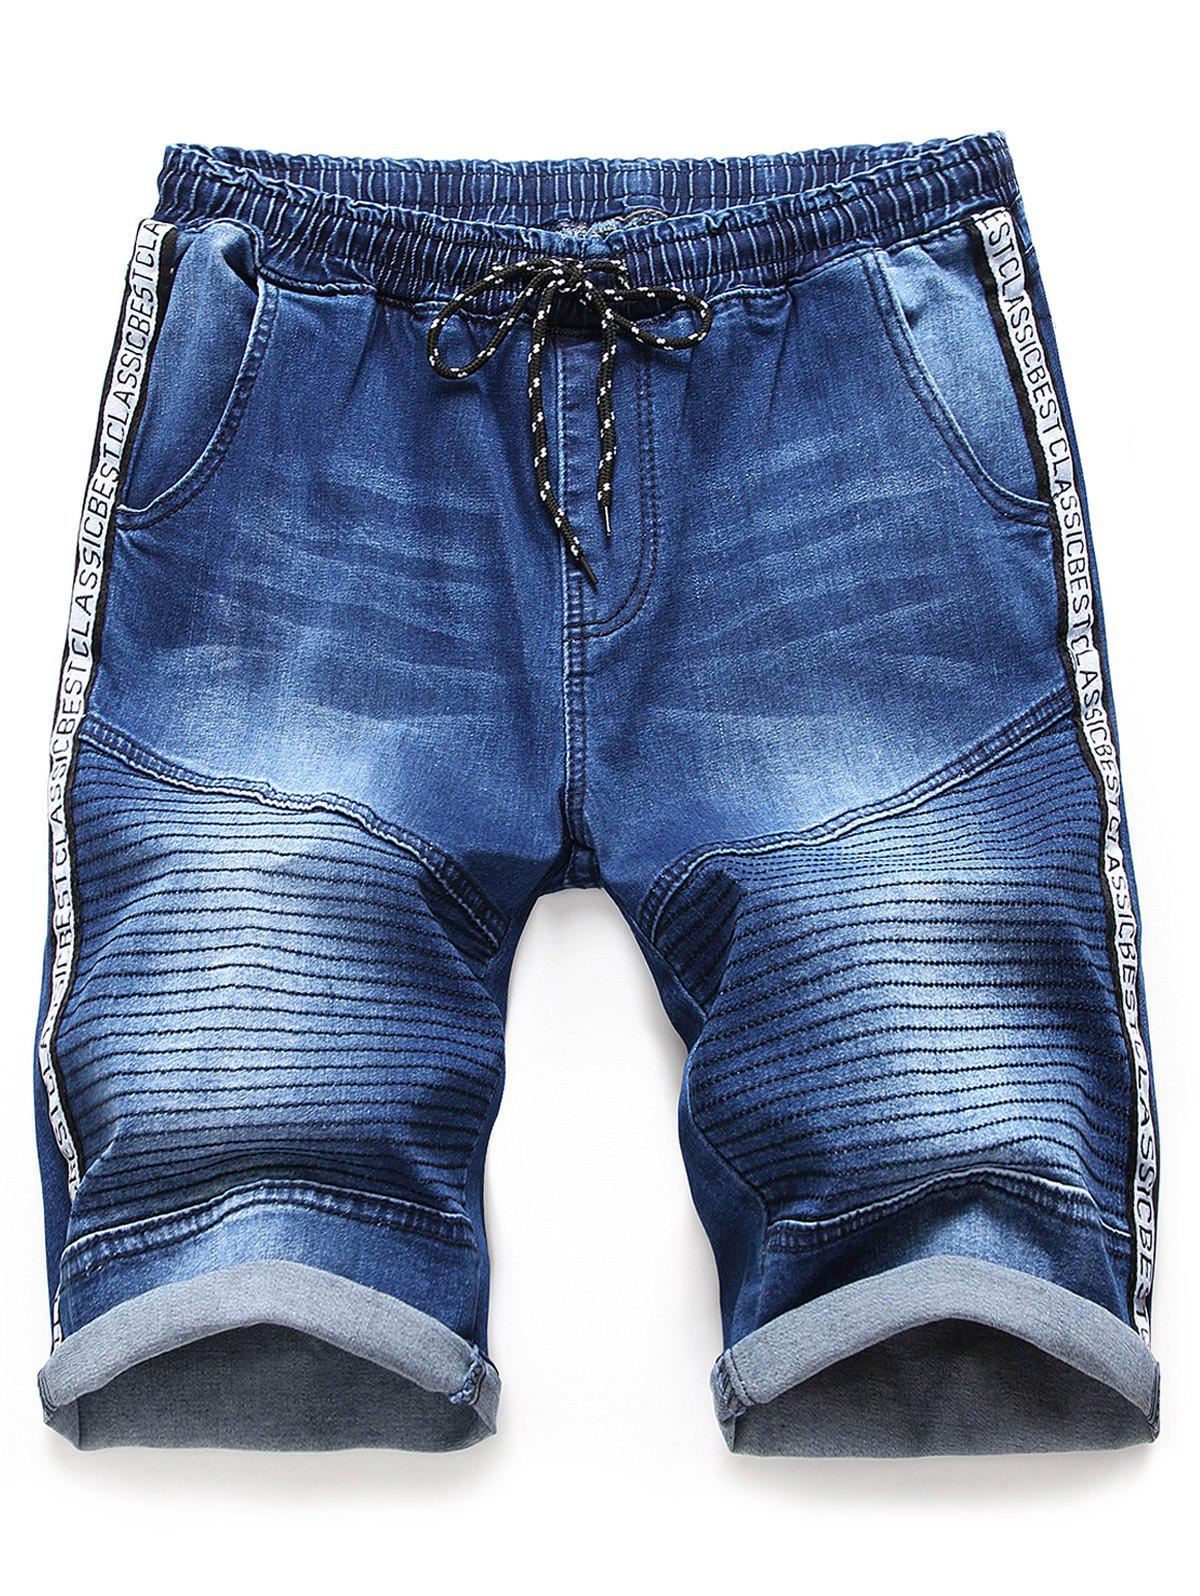 Latest Letter Print Casual Jeans Shorts